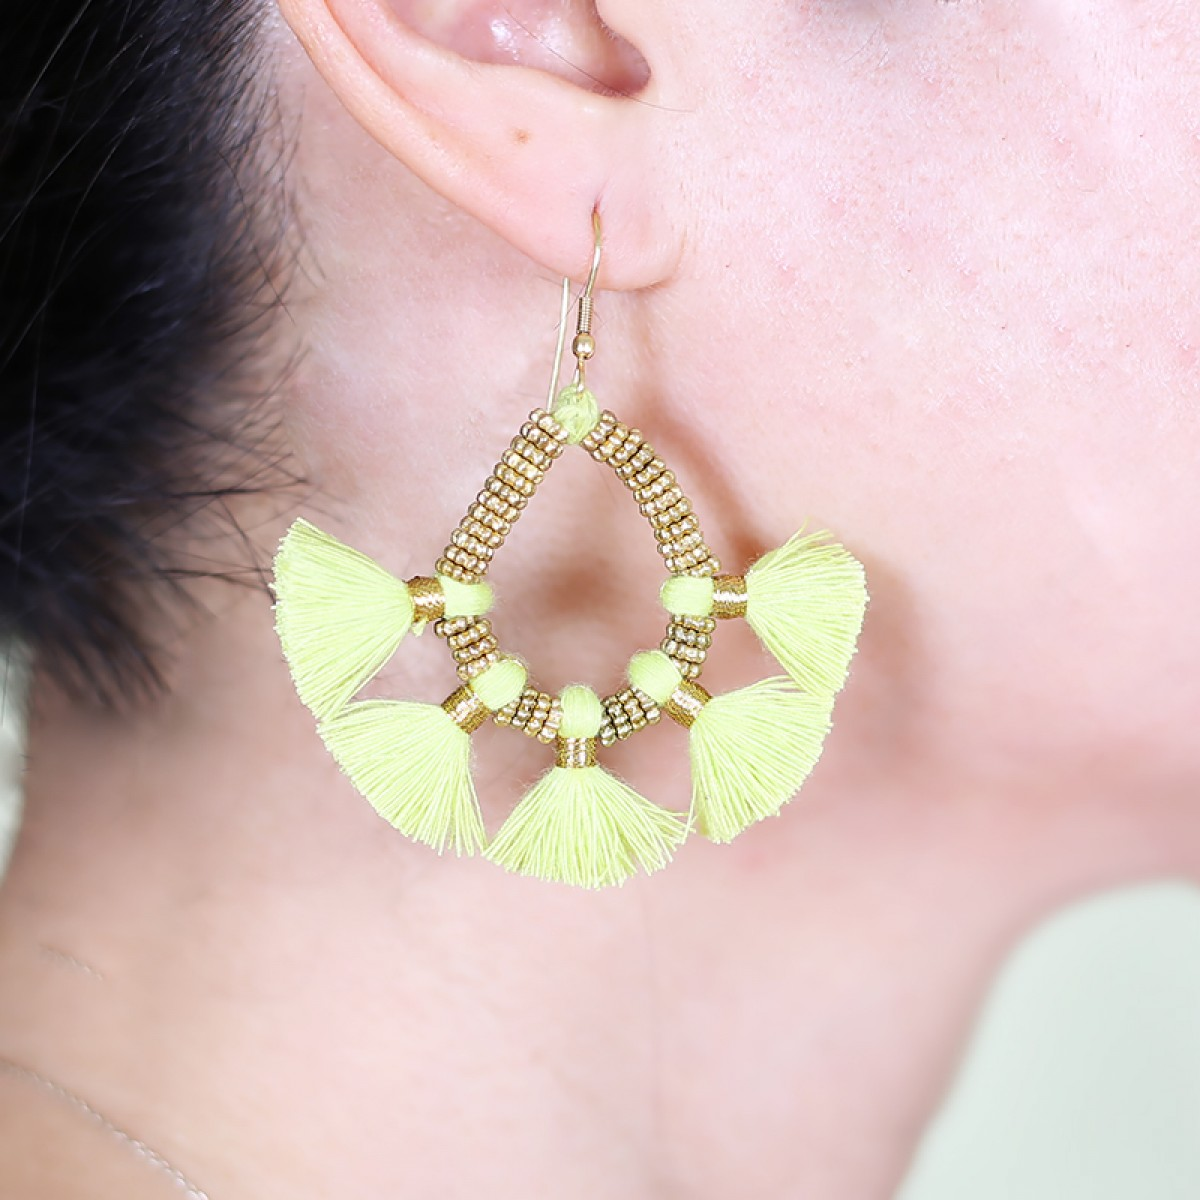 Bohemian Fashion Tassel Earrings - Neon green